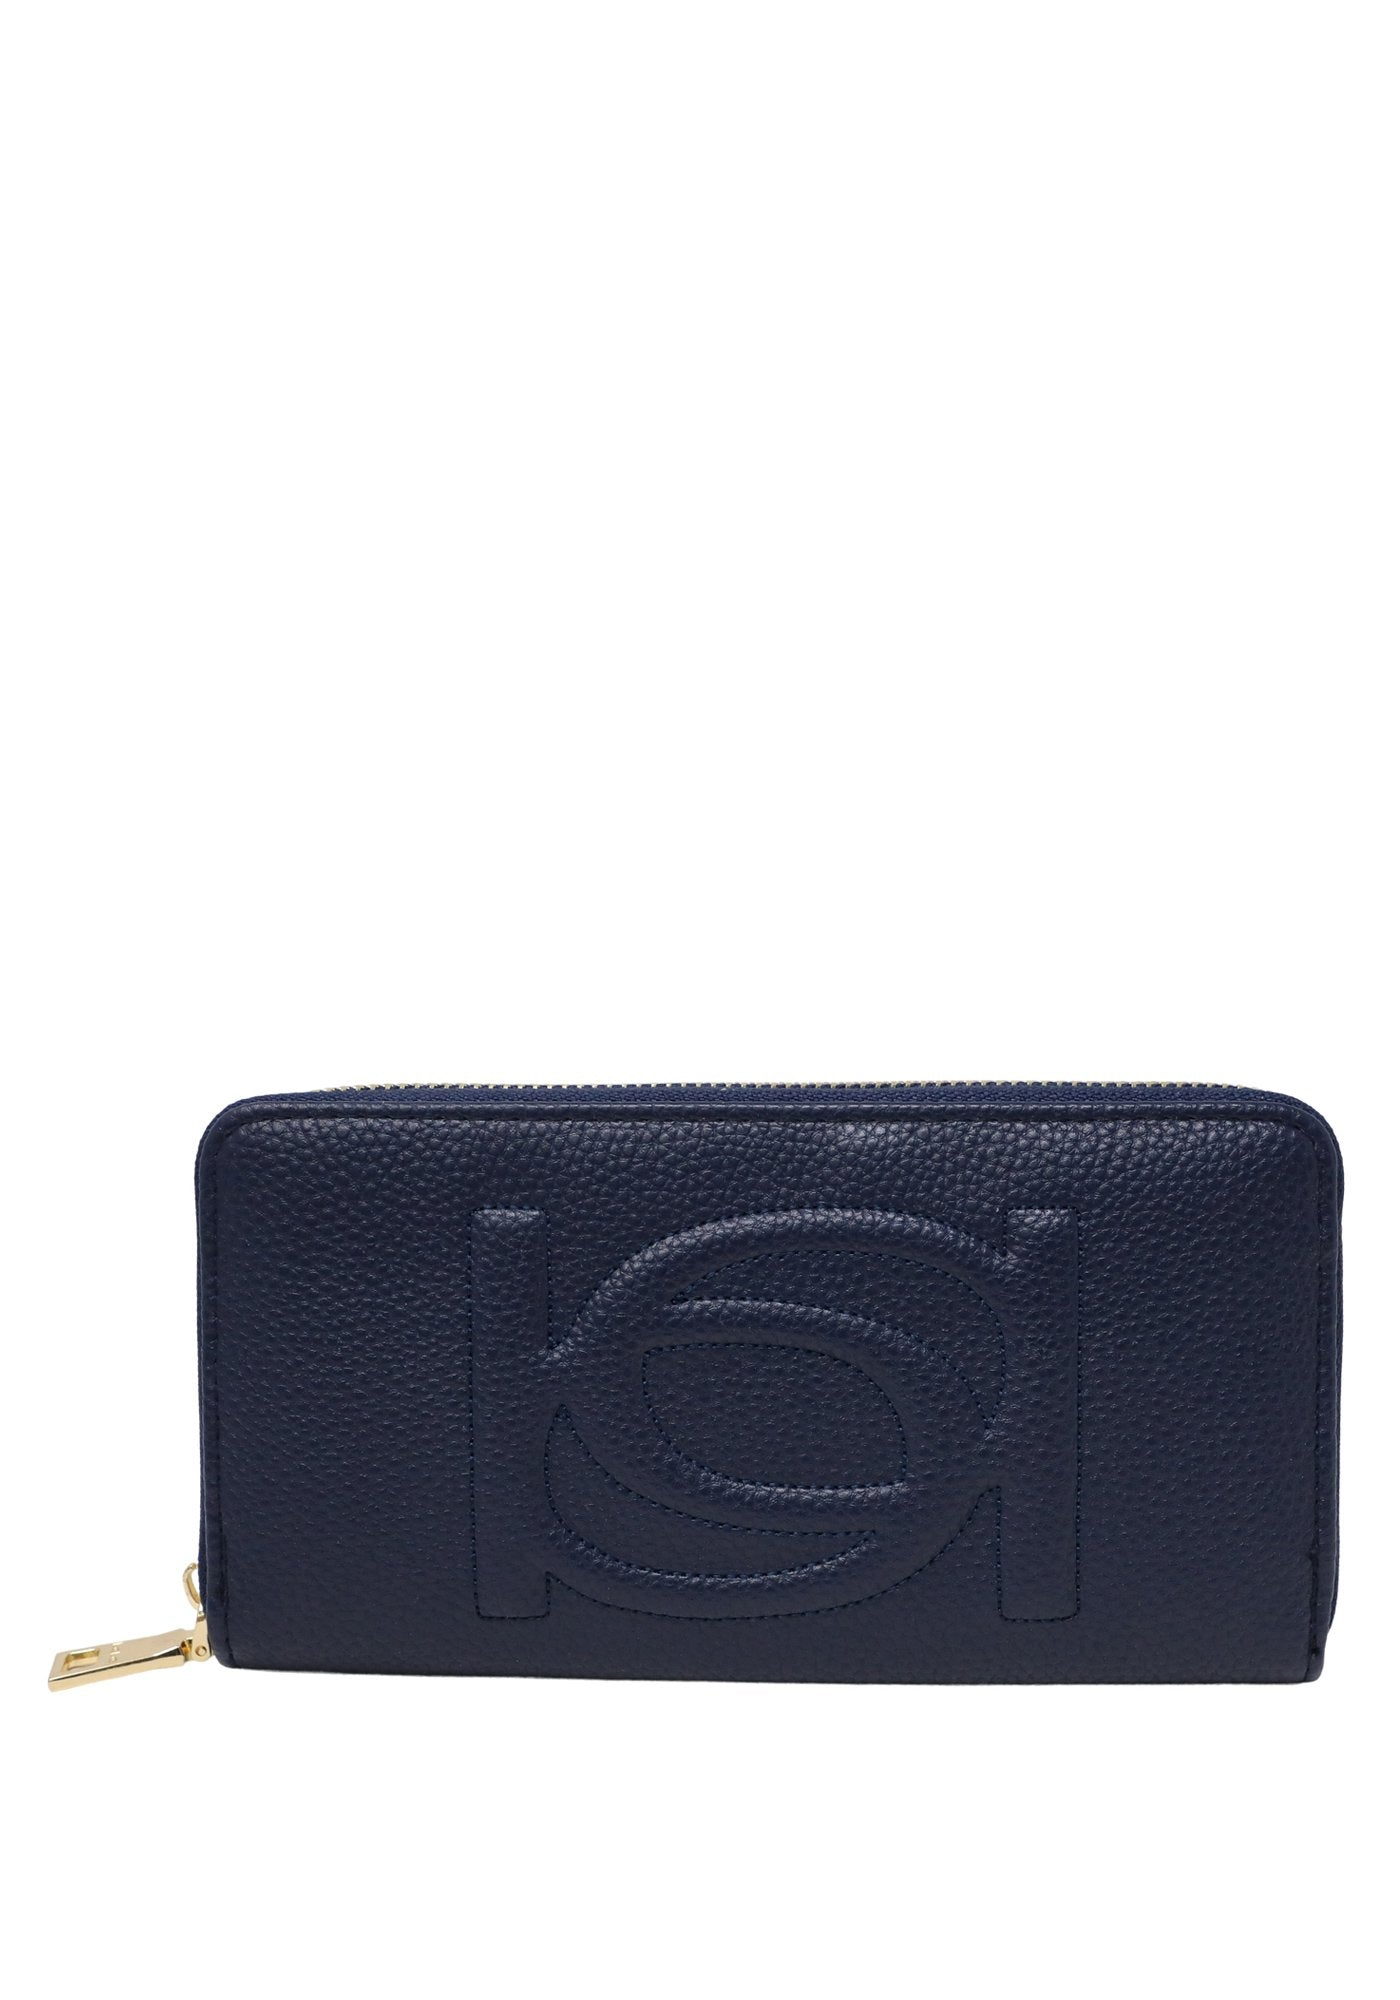 Bebe Women's Poppy Zip Around Wallet, Size OS in Navy Blue Polyurethane